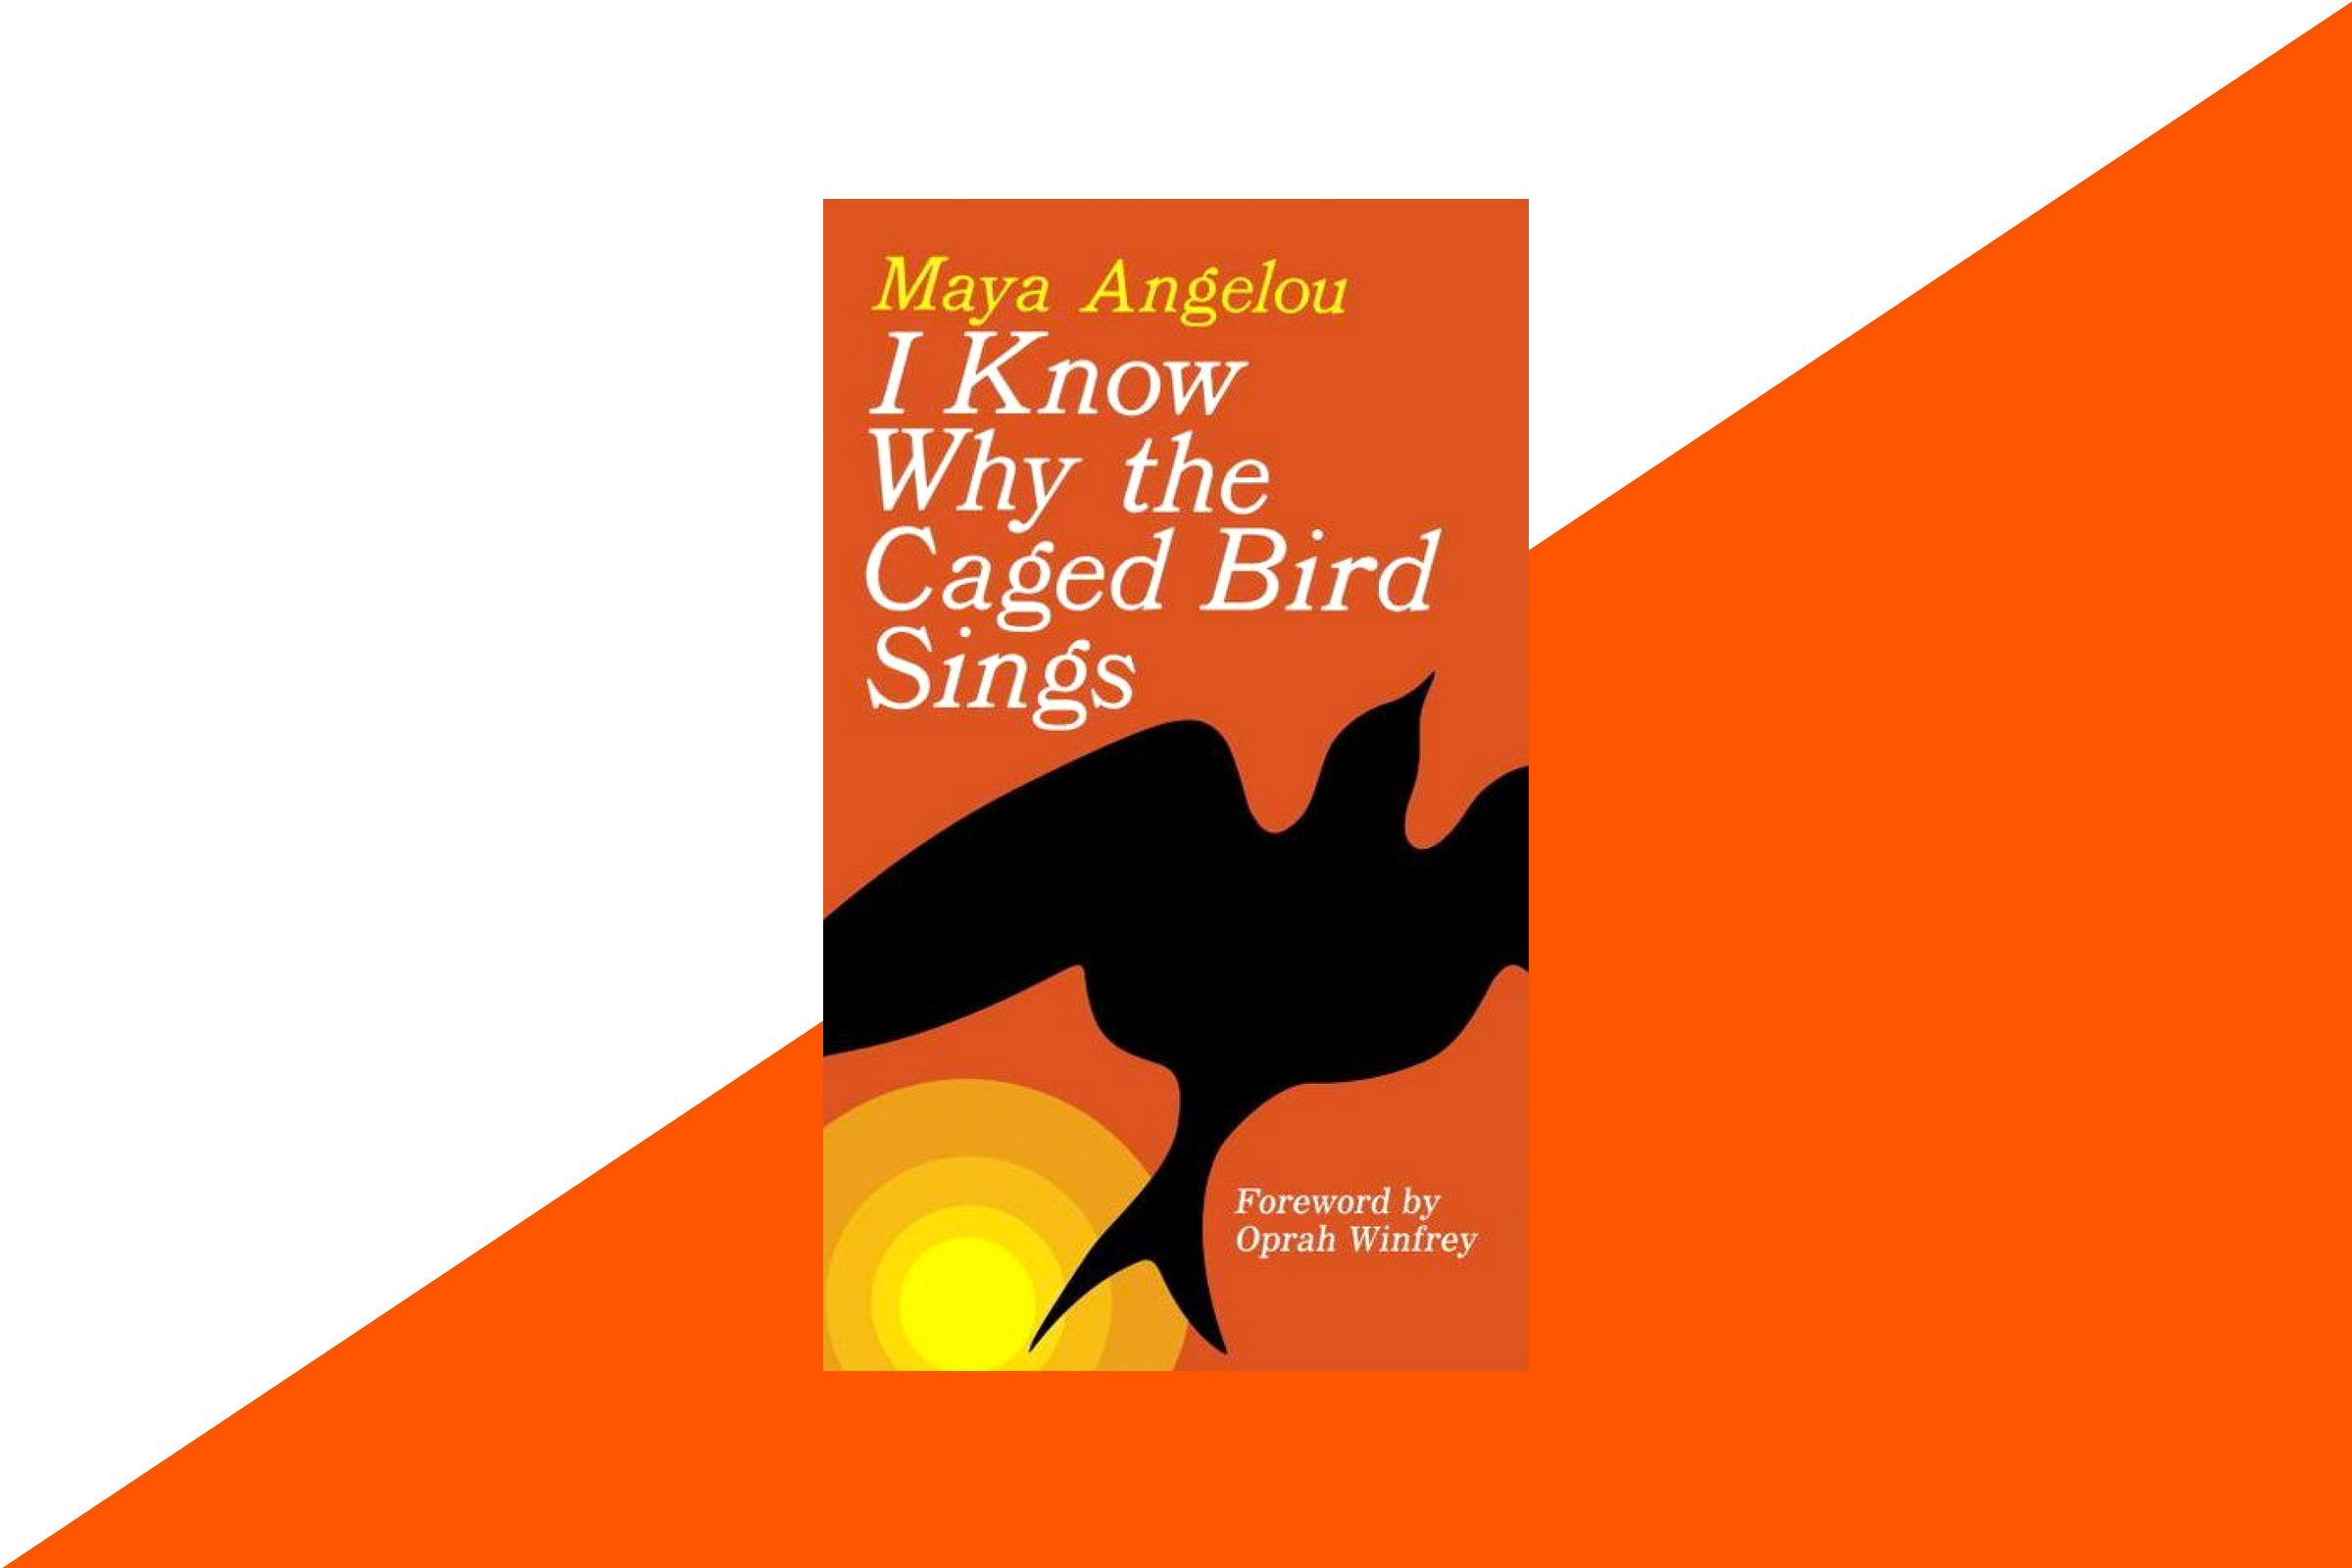 analysis know why caged bird sings I know why the caged bird sings summary & study guide includes detailed chapter summaries and analysis, quotes, character descriptions, themes, and more.